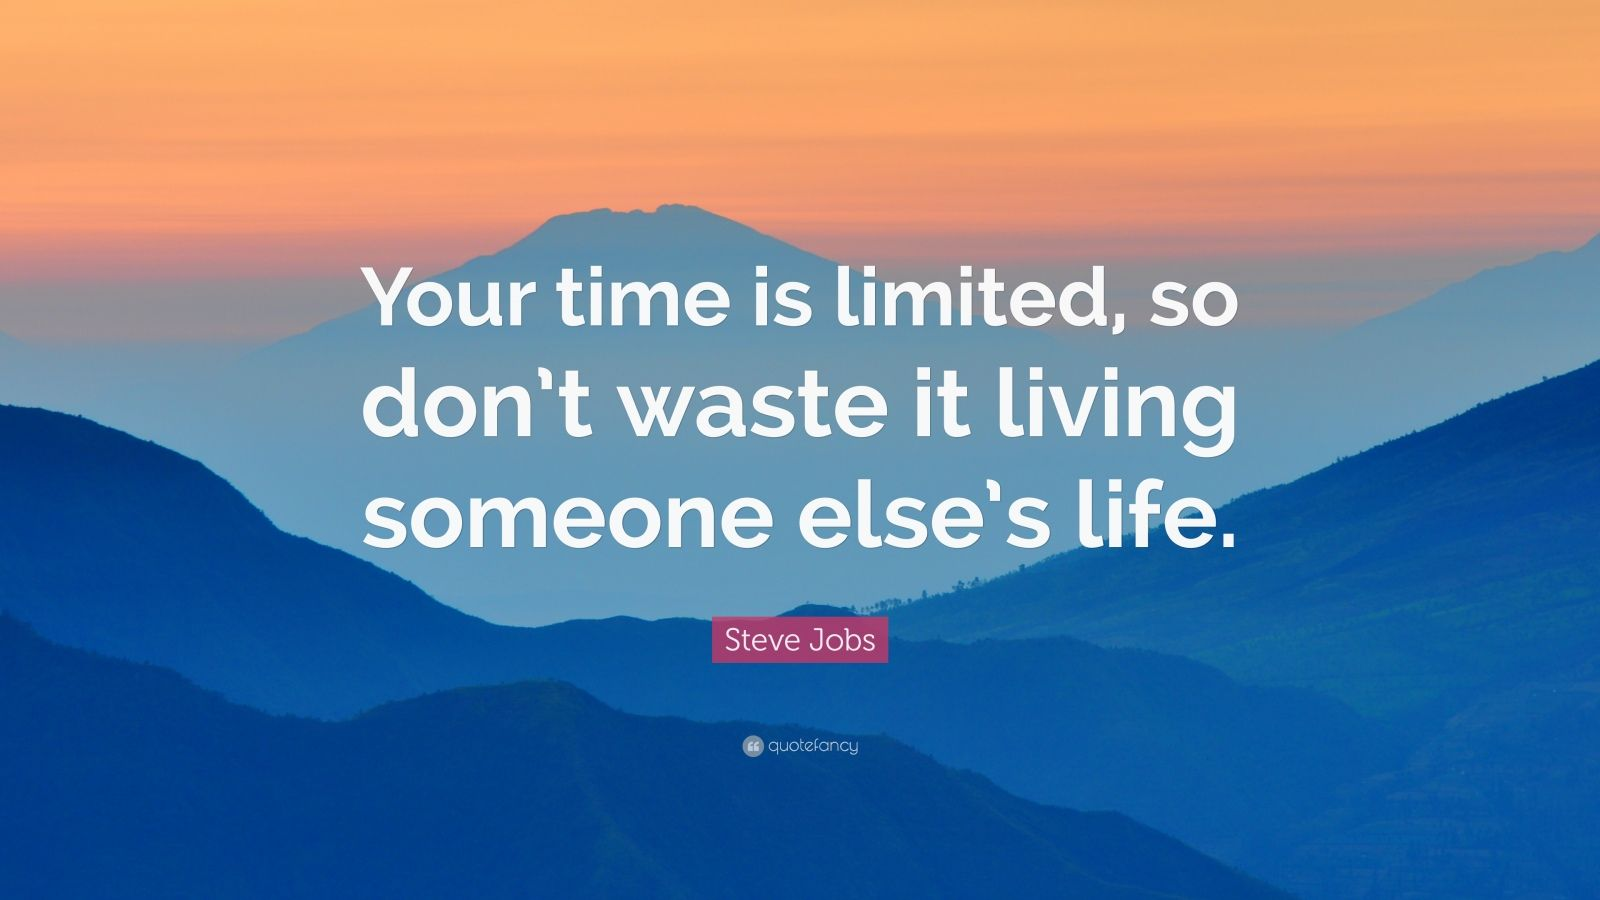 Don't Waste Your Time Is It Living Someone Else's Life so Limited Steve Jobs